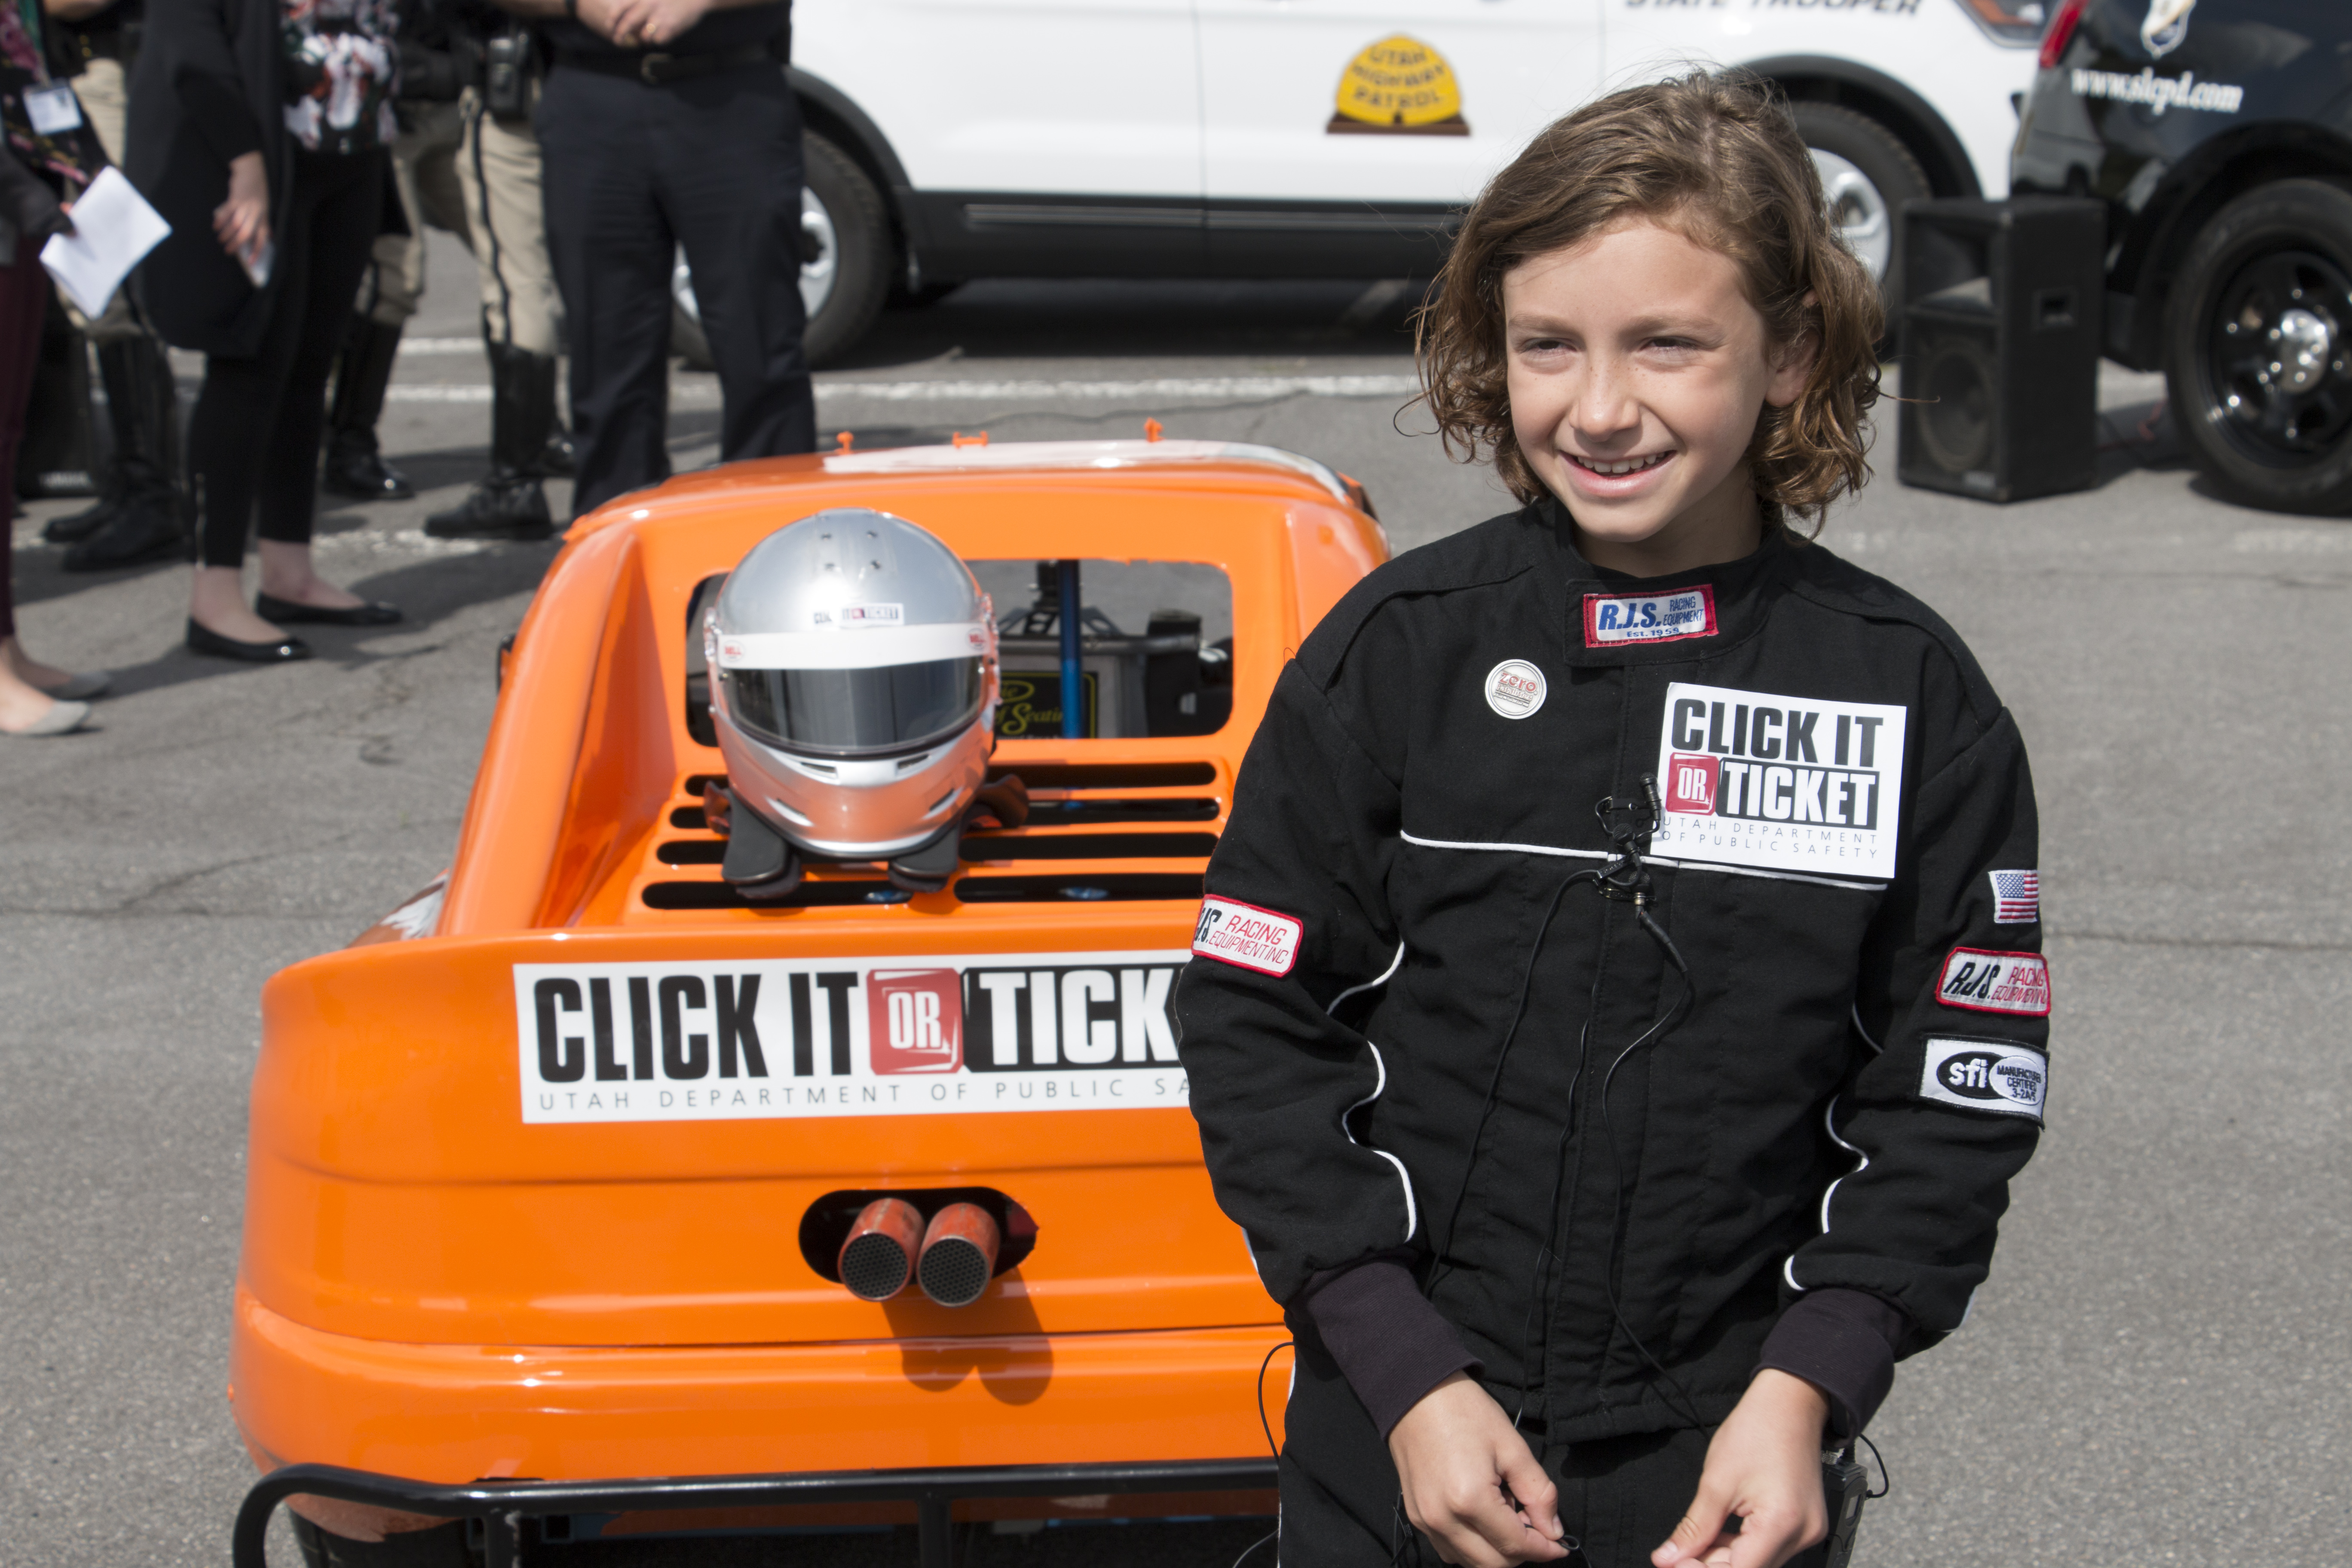 Nine year old Tuscan Nuccitelli stands by his race car.